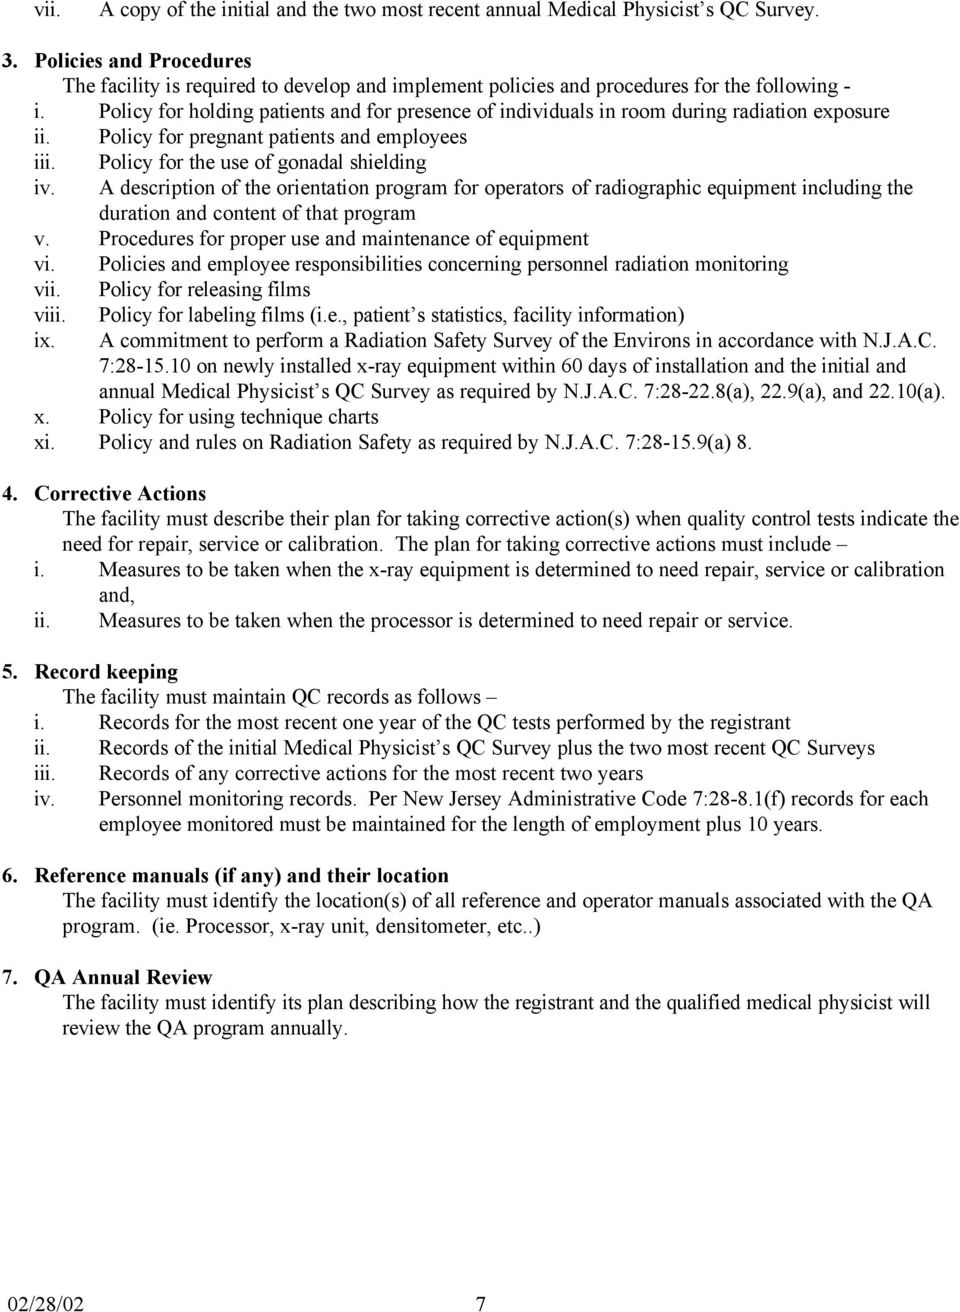 Policy for holding patients and for presence of individuals in room during radiation exposure ii. Policy for pregnant patients and employees iii. Policy for the use of gonadal shielding iv.